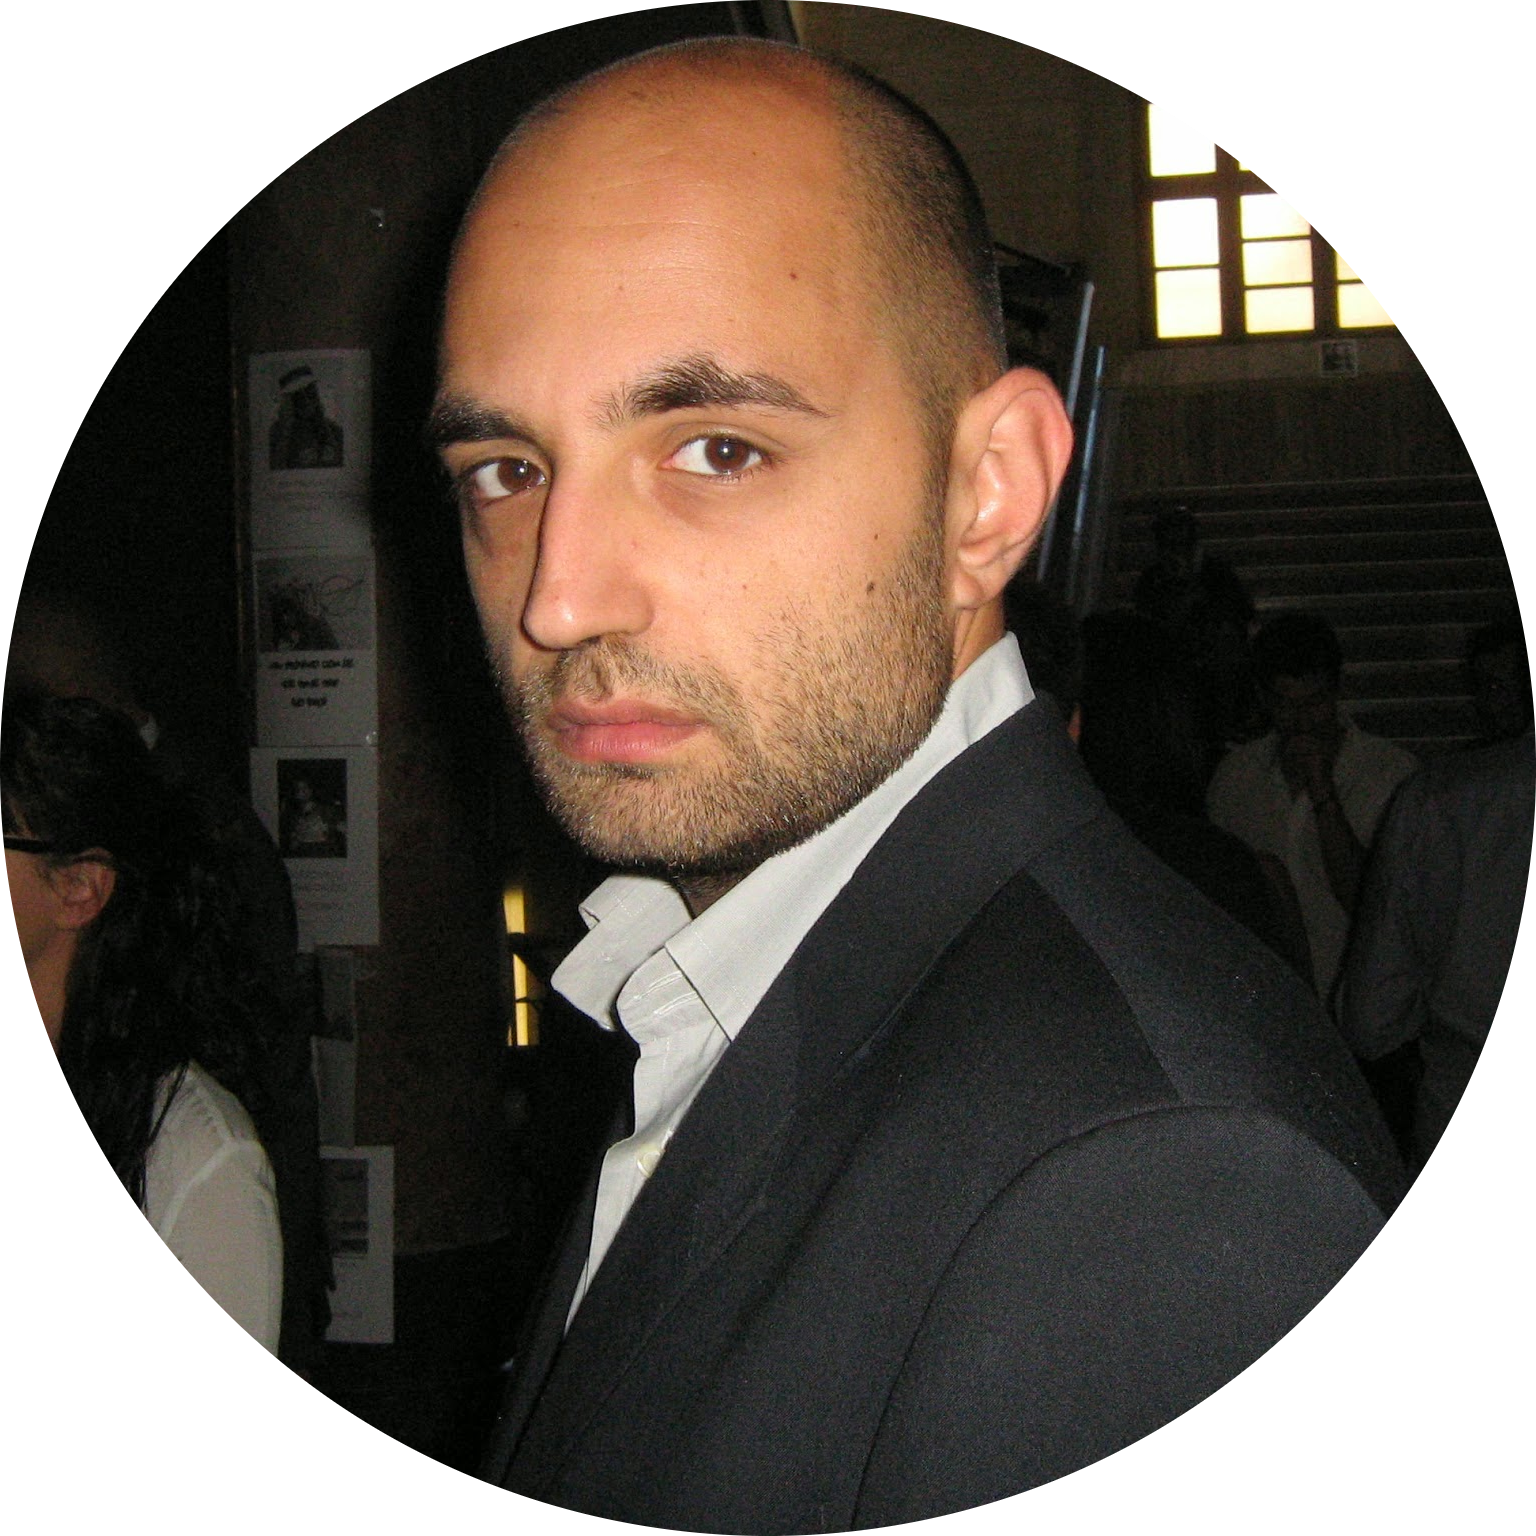 Stefano D'Onofrio, Solution Developer